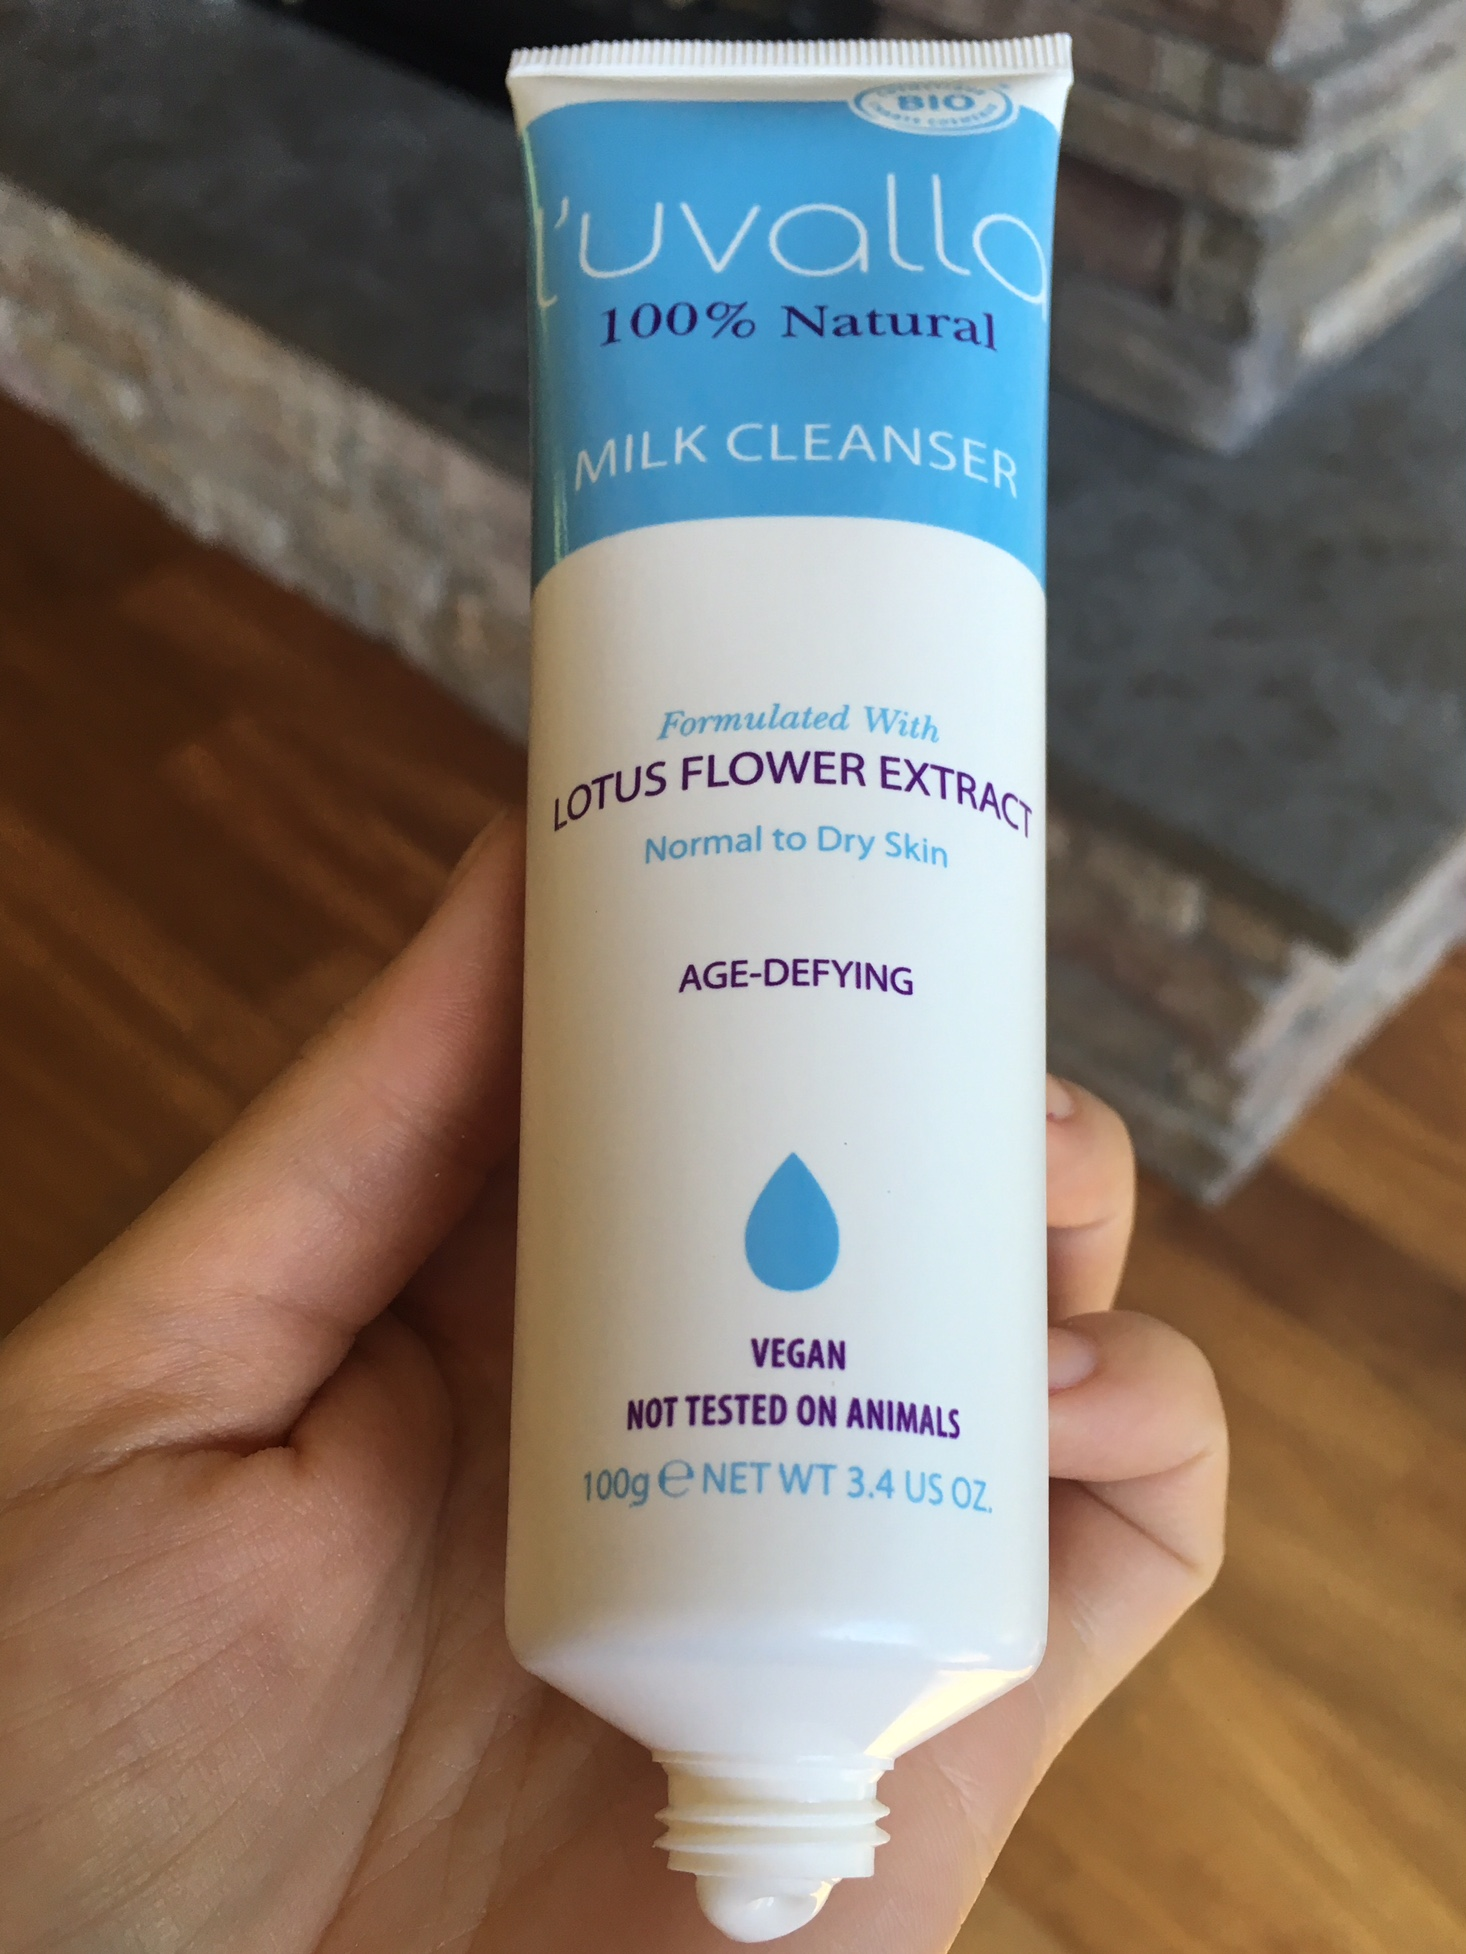 luvalla milk cleanser